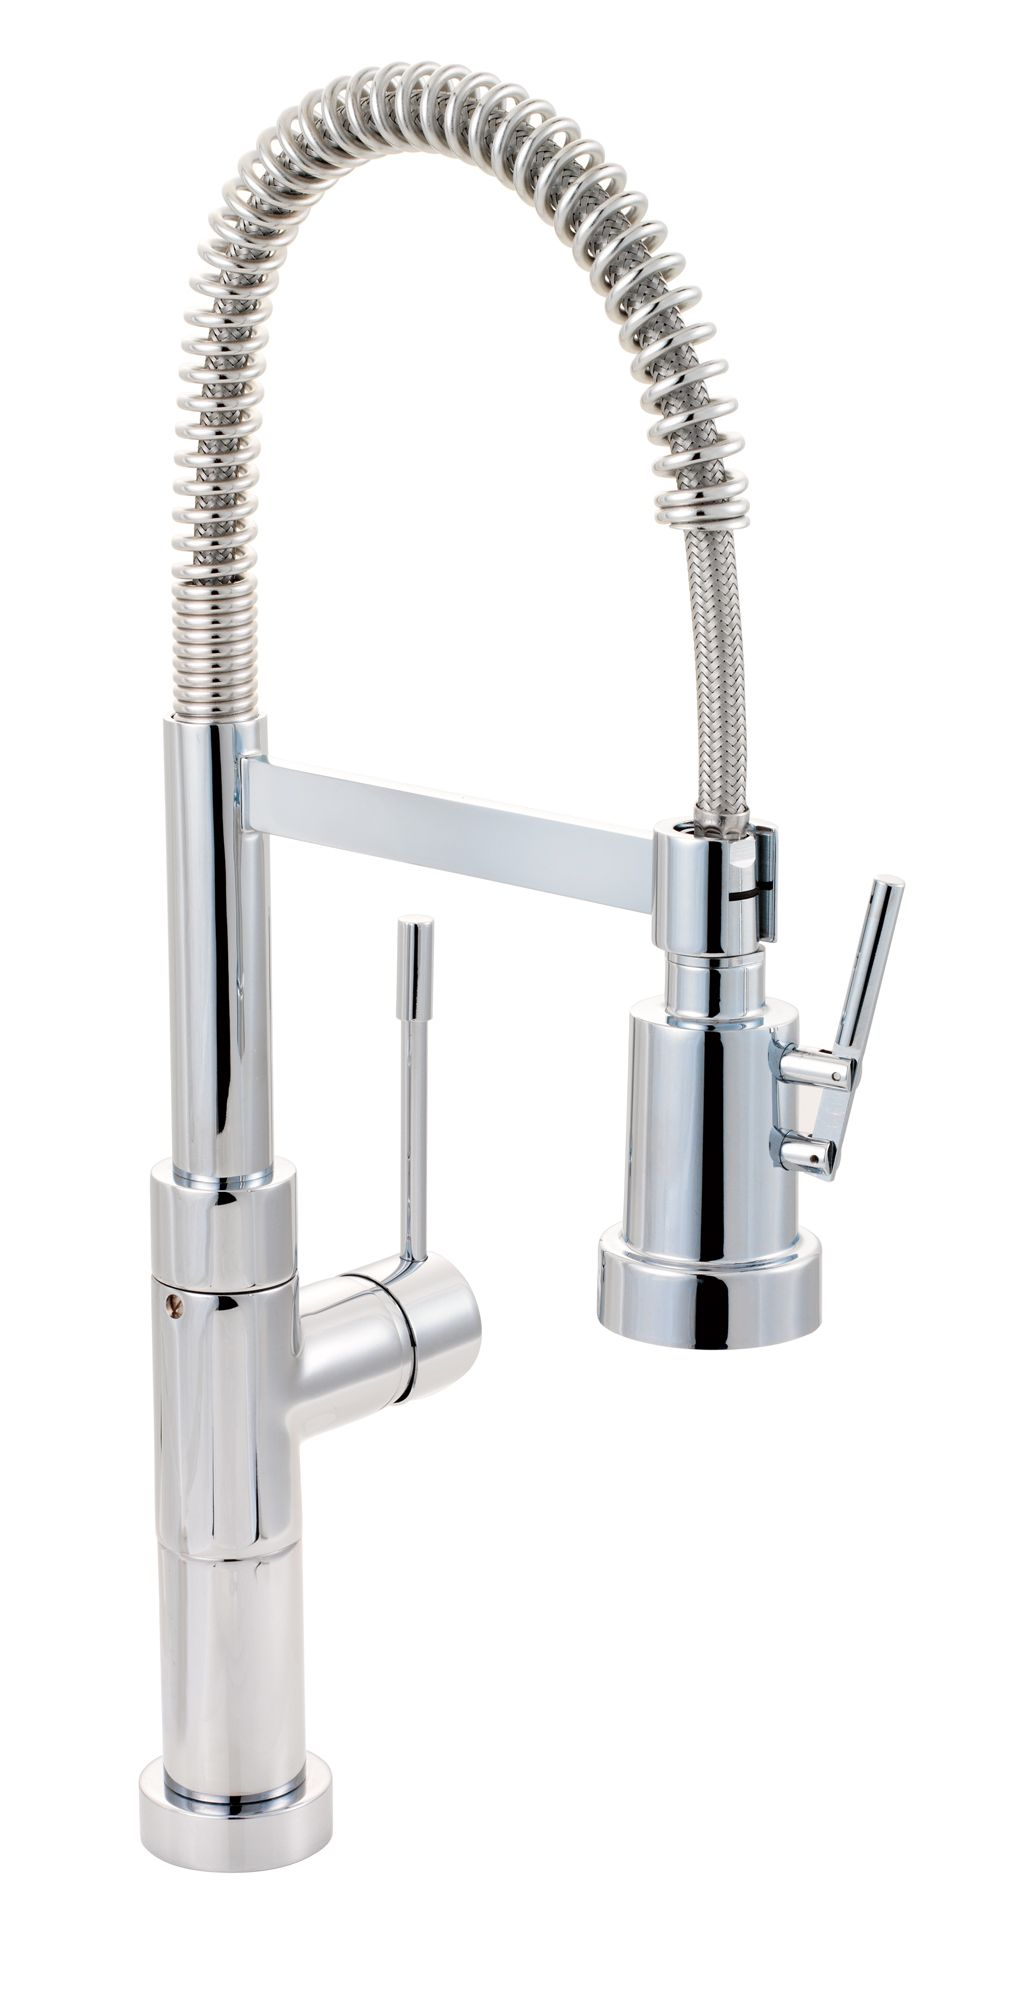 Amazing kitchen taps spring neck/pull out taps oljtlnf